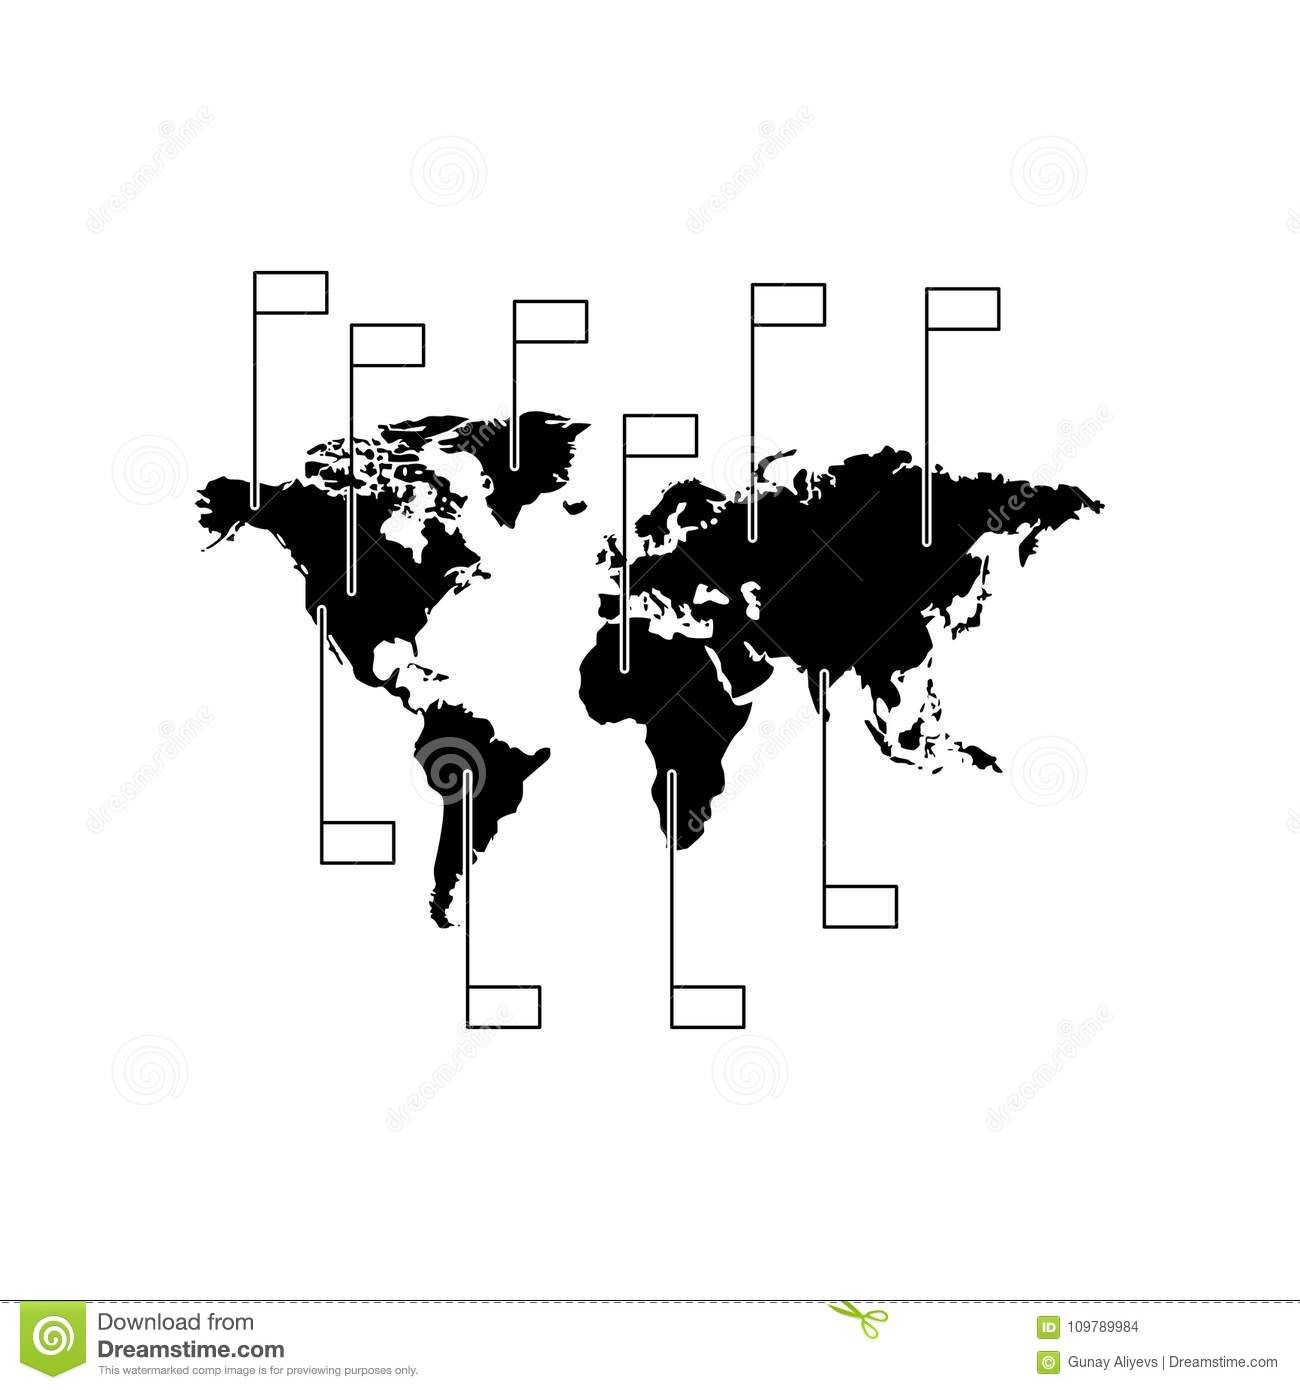 World map infographics icon element of global statistics for mobile royalty free illustration download world map infographics gumiabroncs Image collections